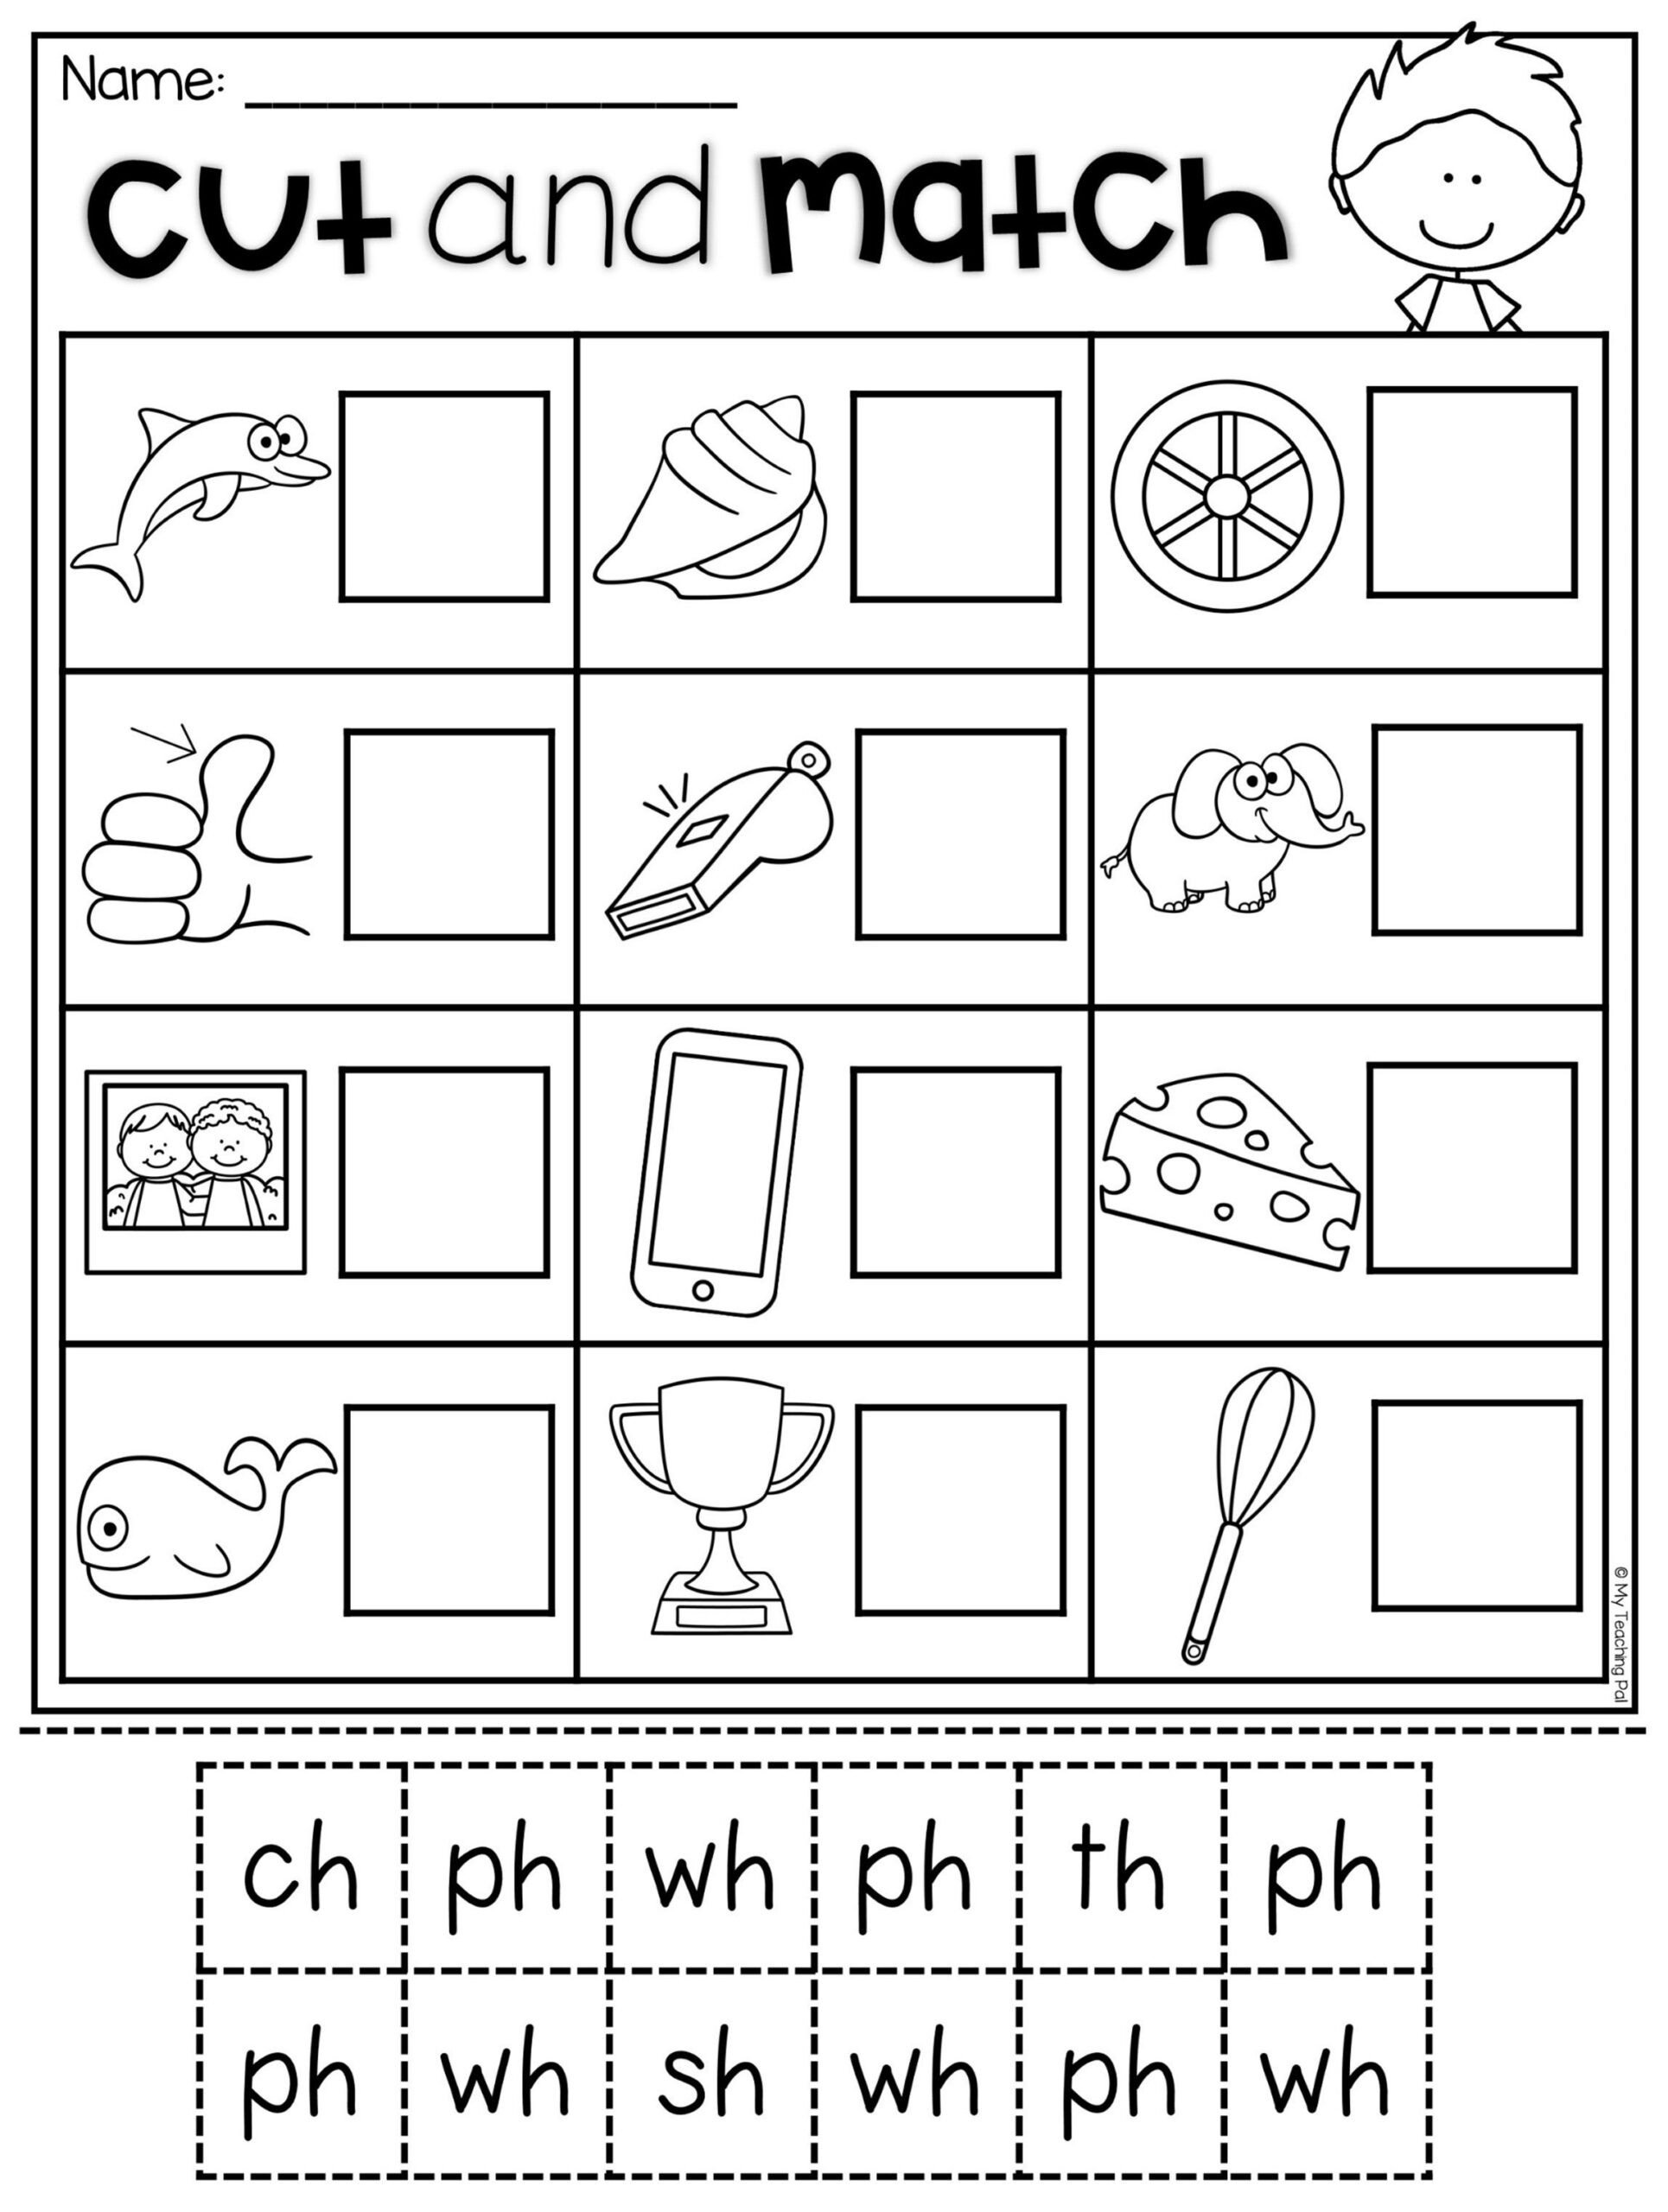 Th Worksheets for Kindergarten Digraph Worksheet Packet Ch Th Wh Ph Digraphs Worksheets